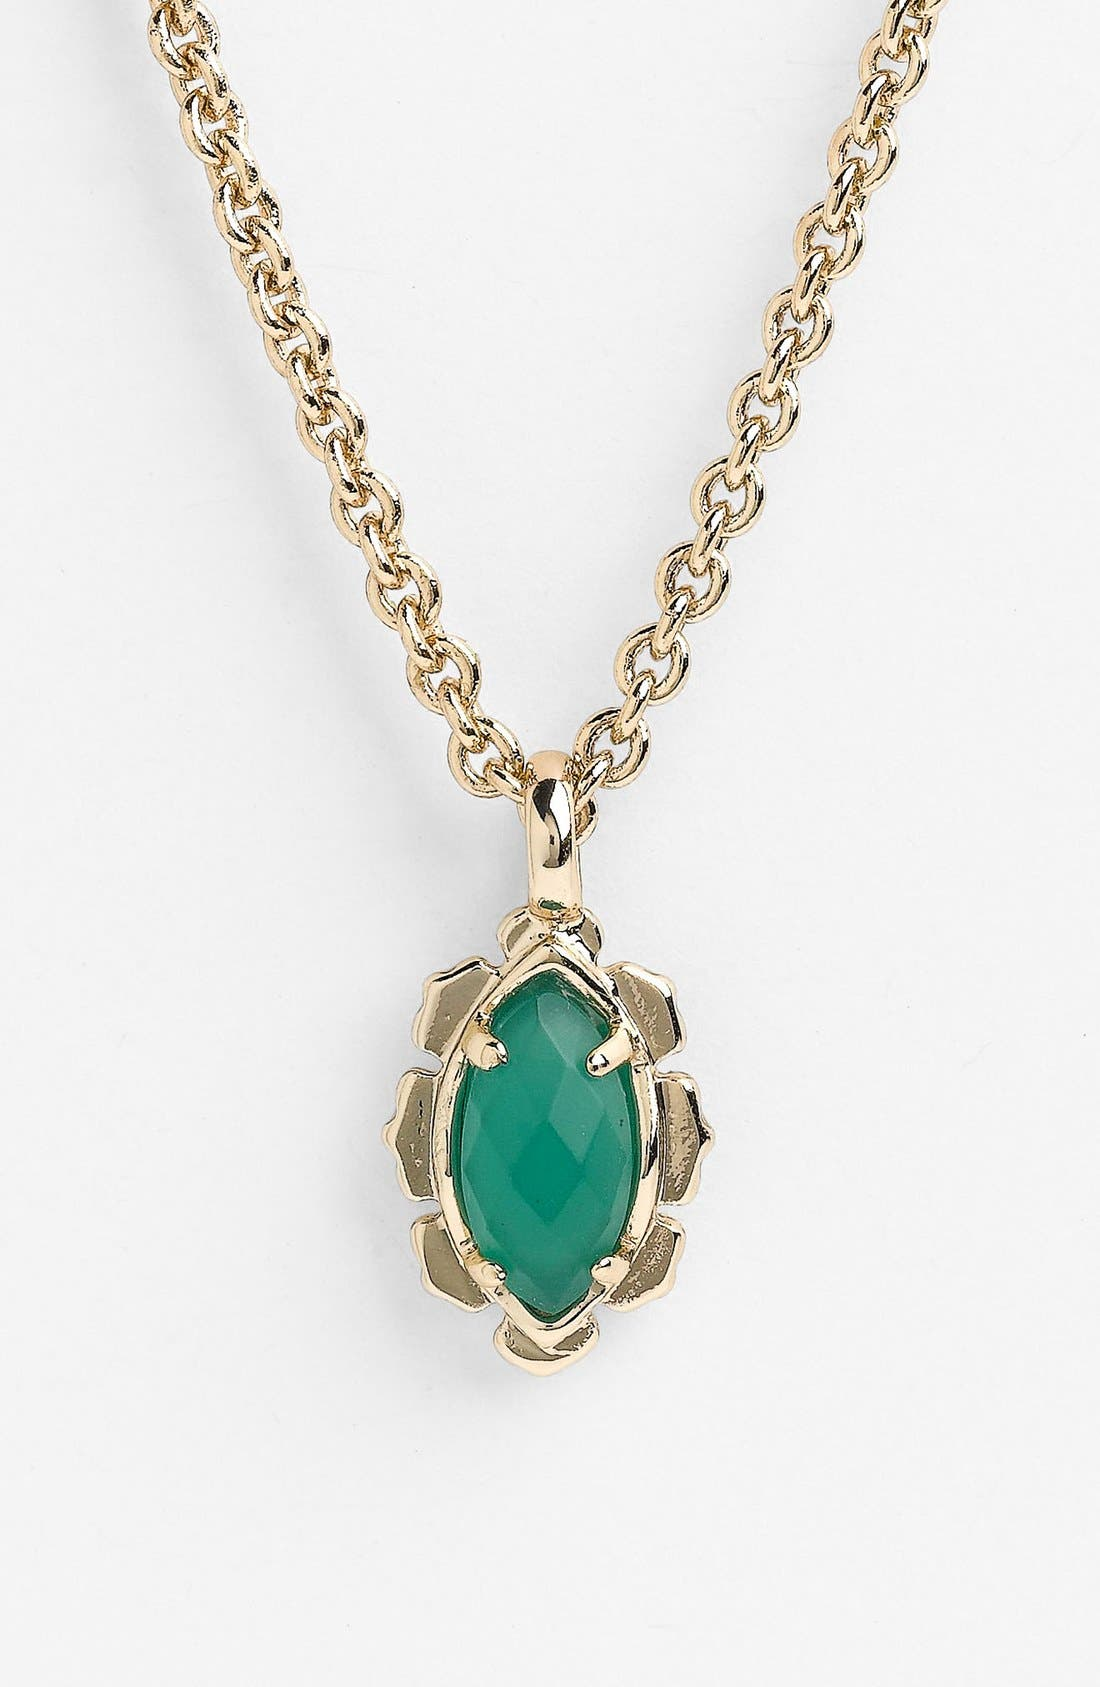 Alternate Image 1 Selected - Kendra Scott 'Lian' Stone Pendant Necklace (Nordstrom Exclusive)